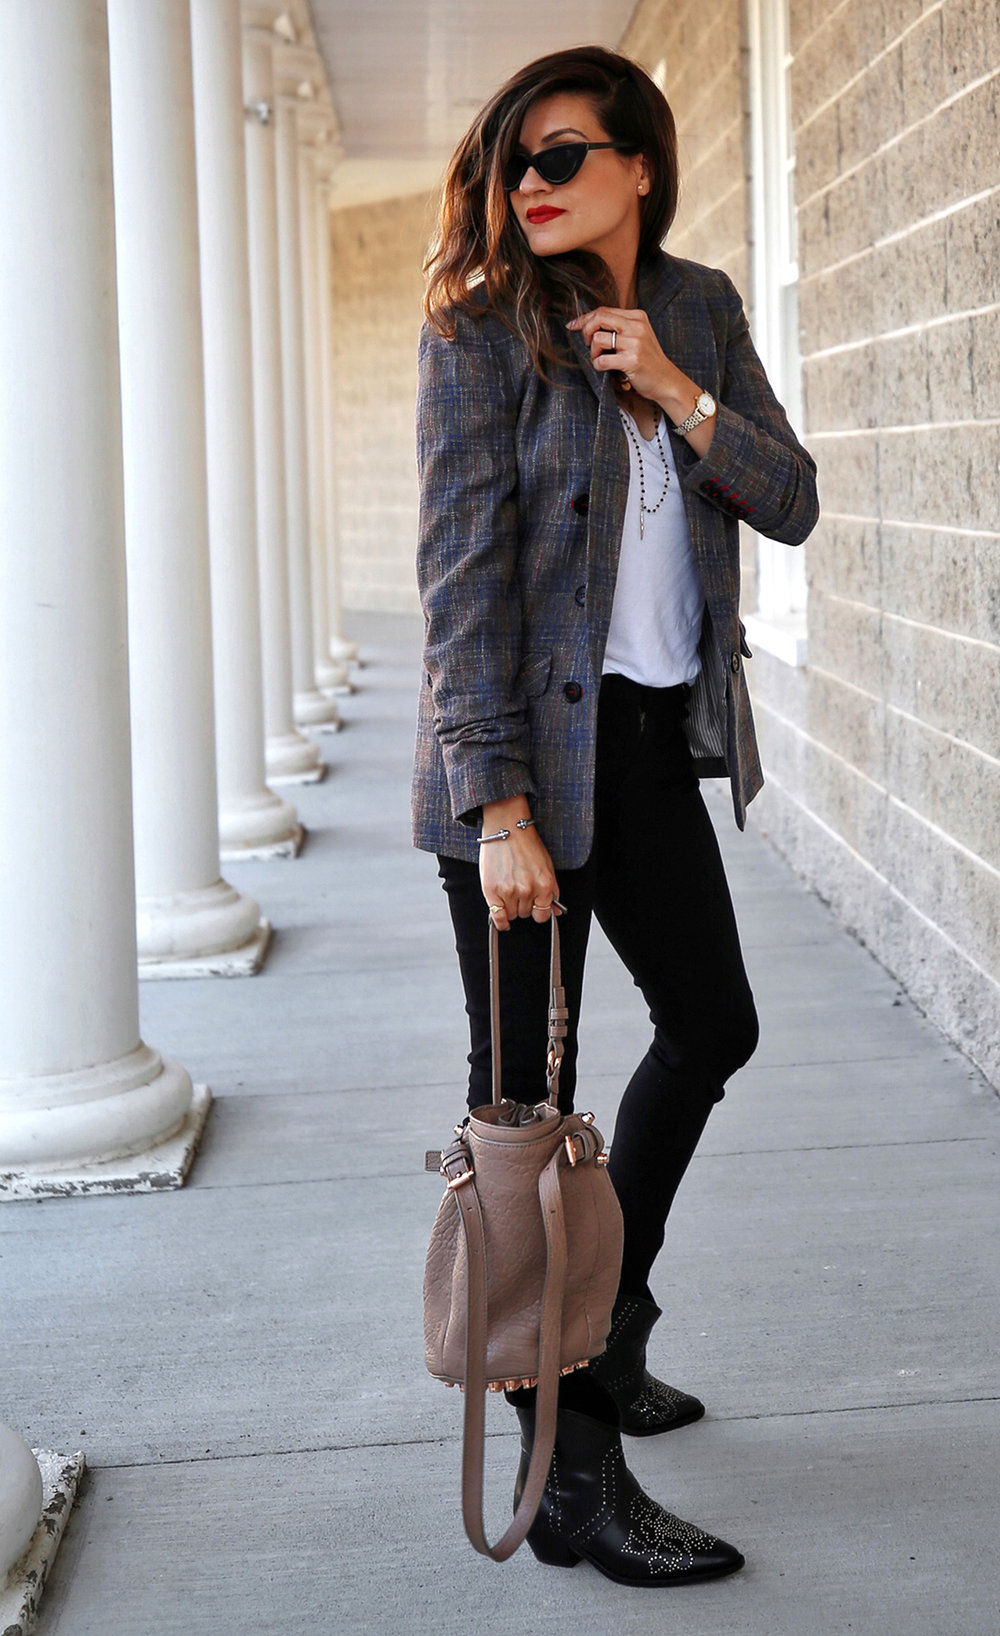 Veronica Beard plaid blazer, Rag & Bone black skinny jeans, Isabel Marant black studded Dollan cowboy boots, Alexander Wang tanned Diego bag with rosegold hardwaare, street style, woahstyle.com by nathalie martin  19.jpg